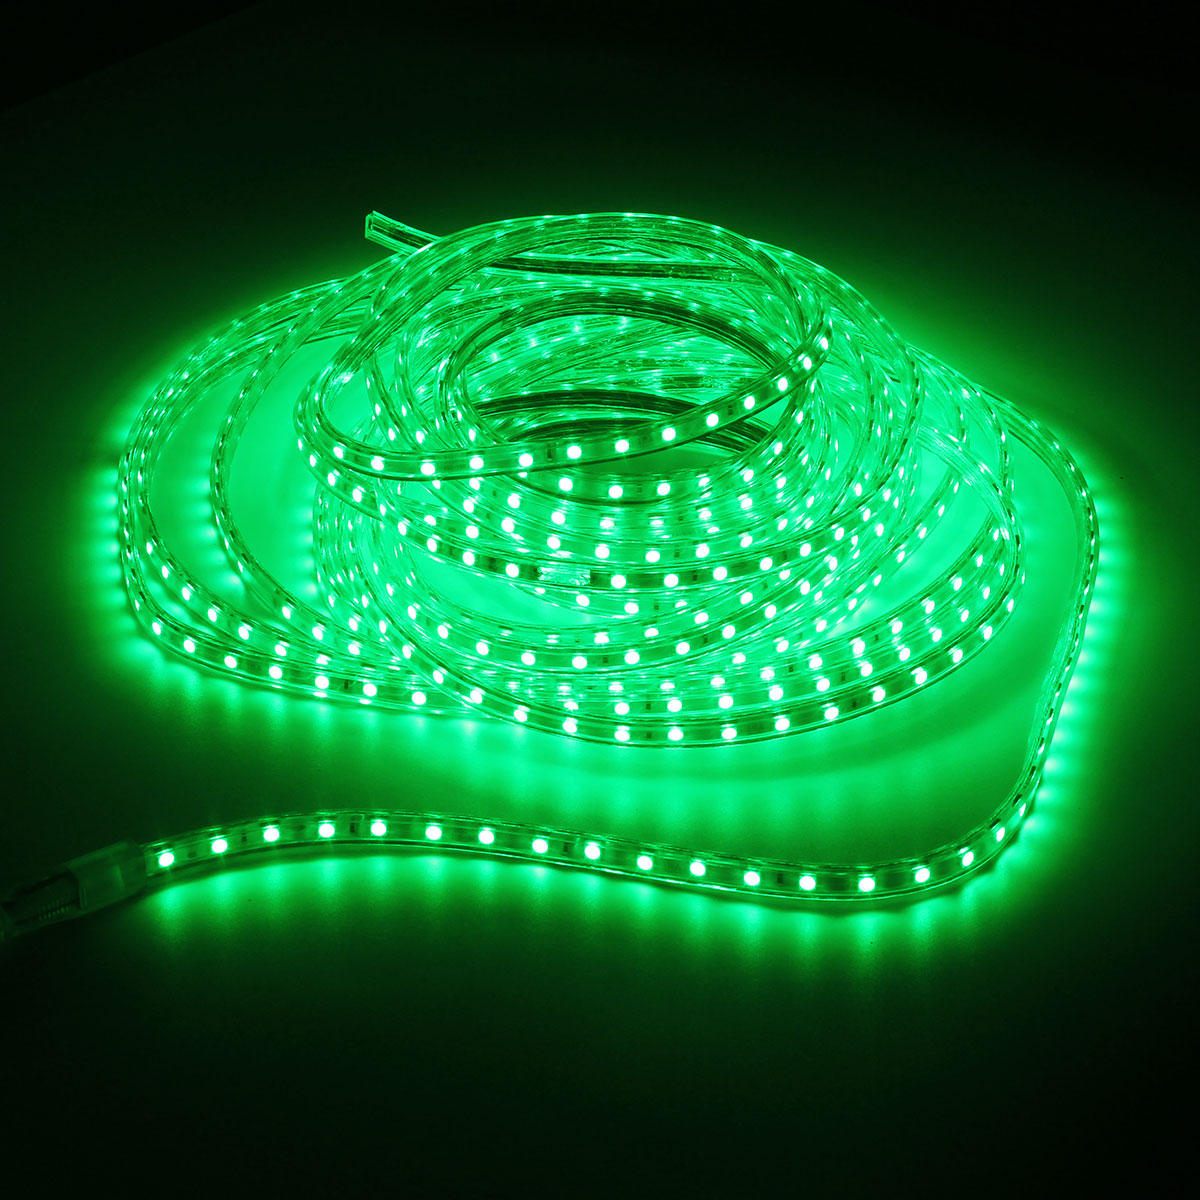 1M 5M WS2813 RGB Dream Color Non-waterproof LED Pixel Strip Light for Holiday Party Decor DC5V - 10